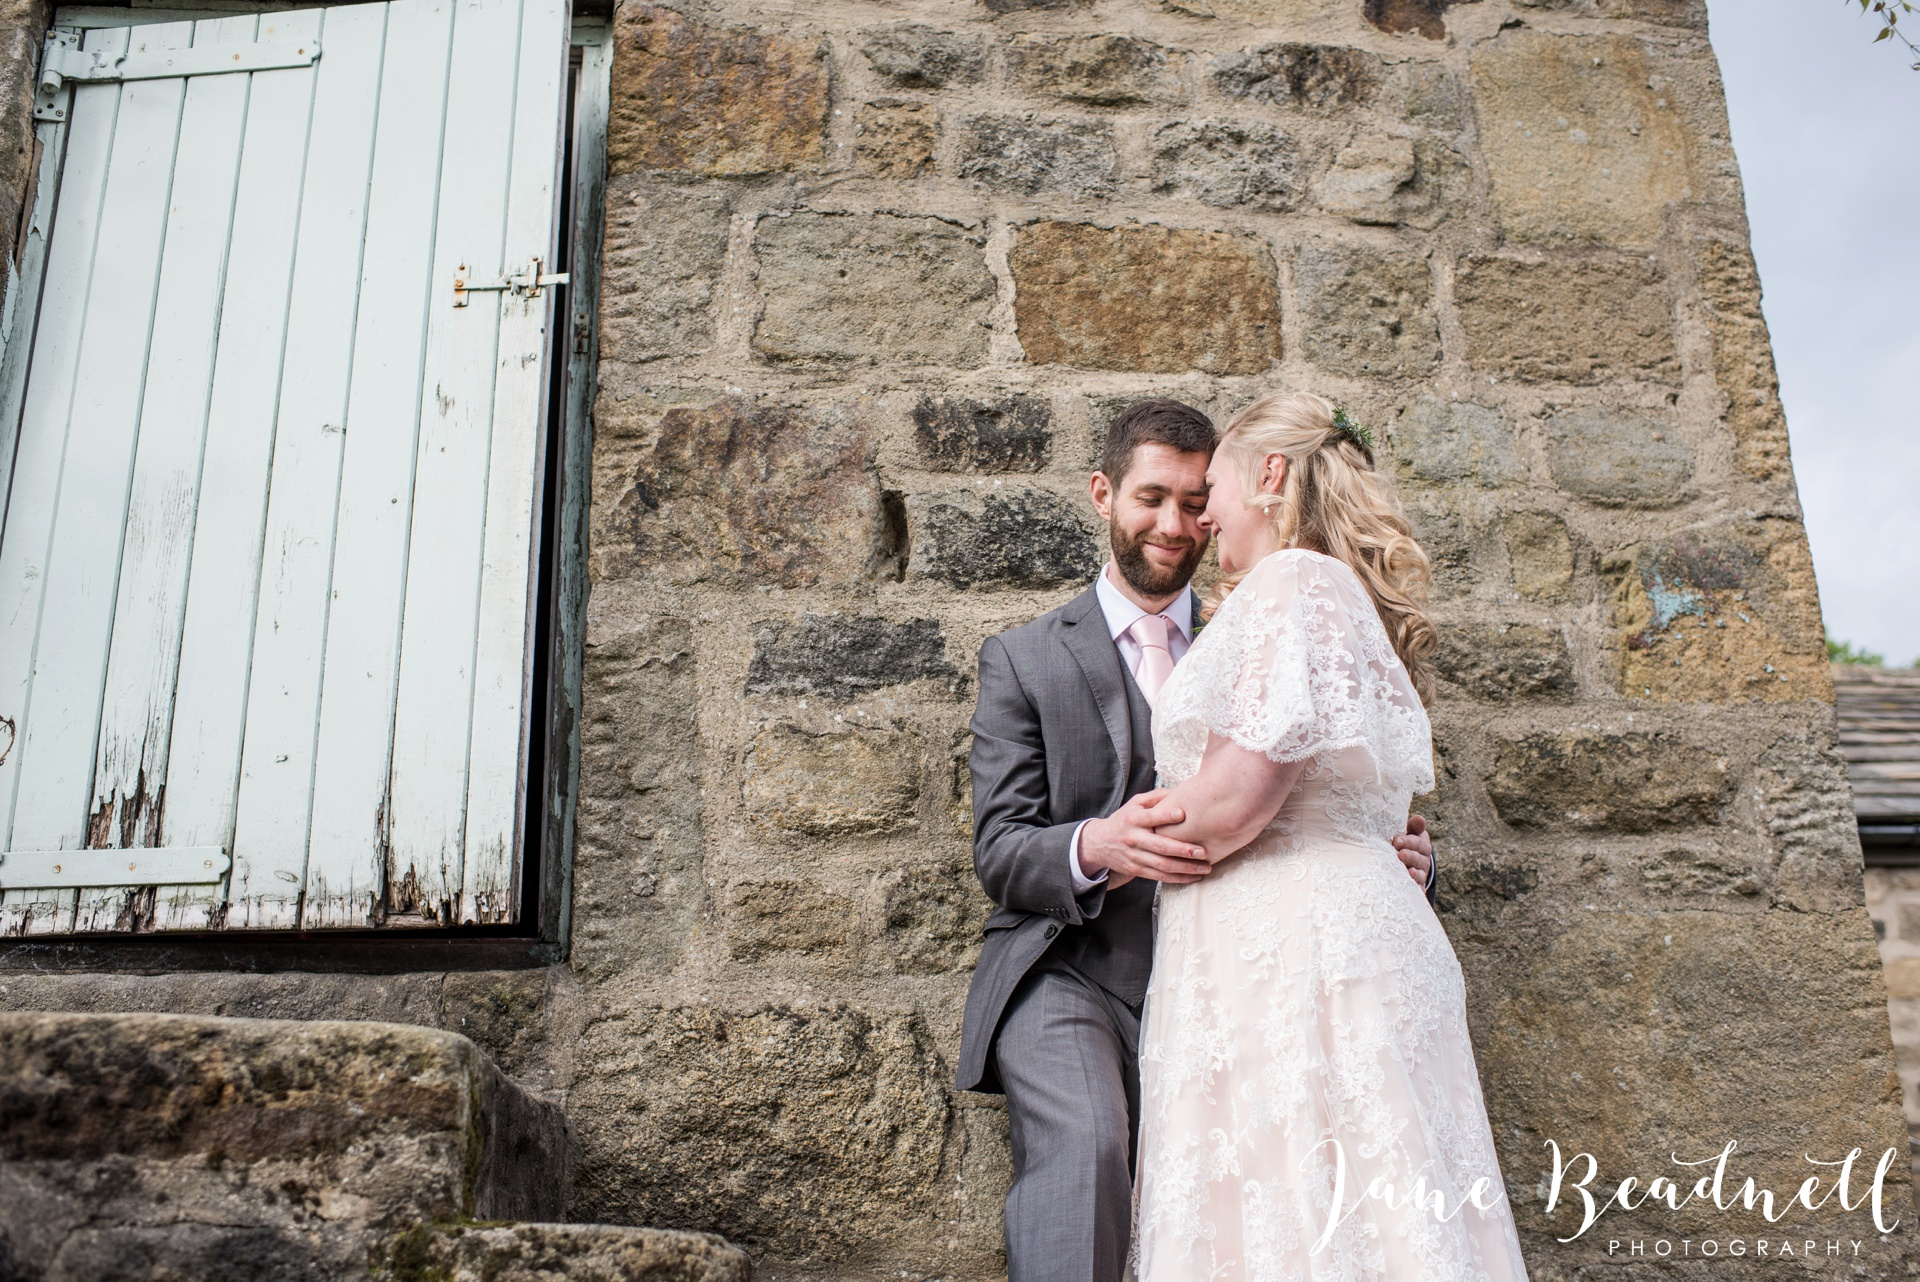 Yorkshire Wedding Photography the cheerful Chilli Barn Wedding by Jane Beadnell Photography_0146